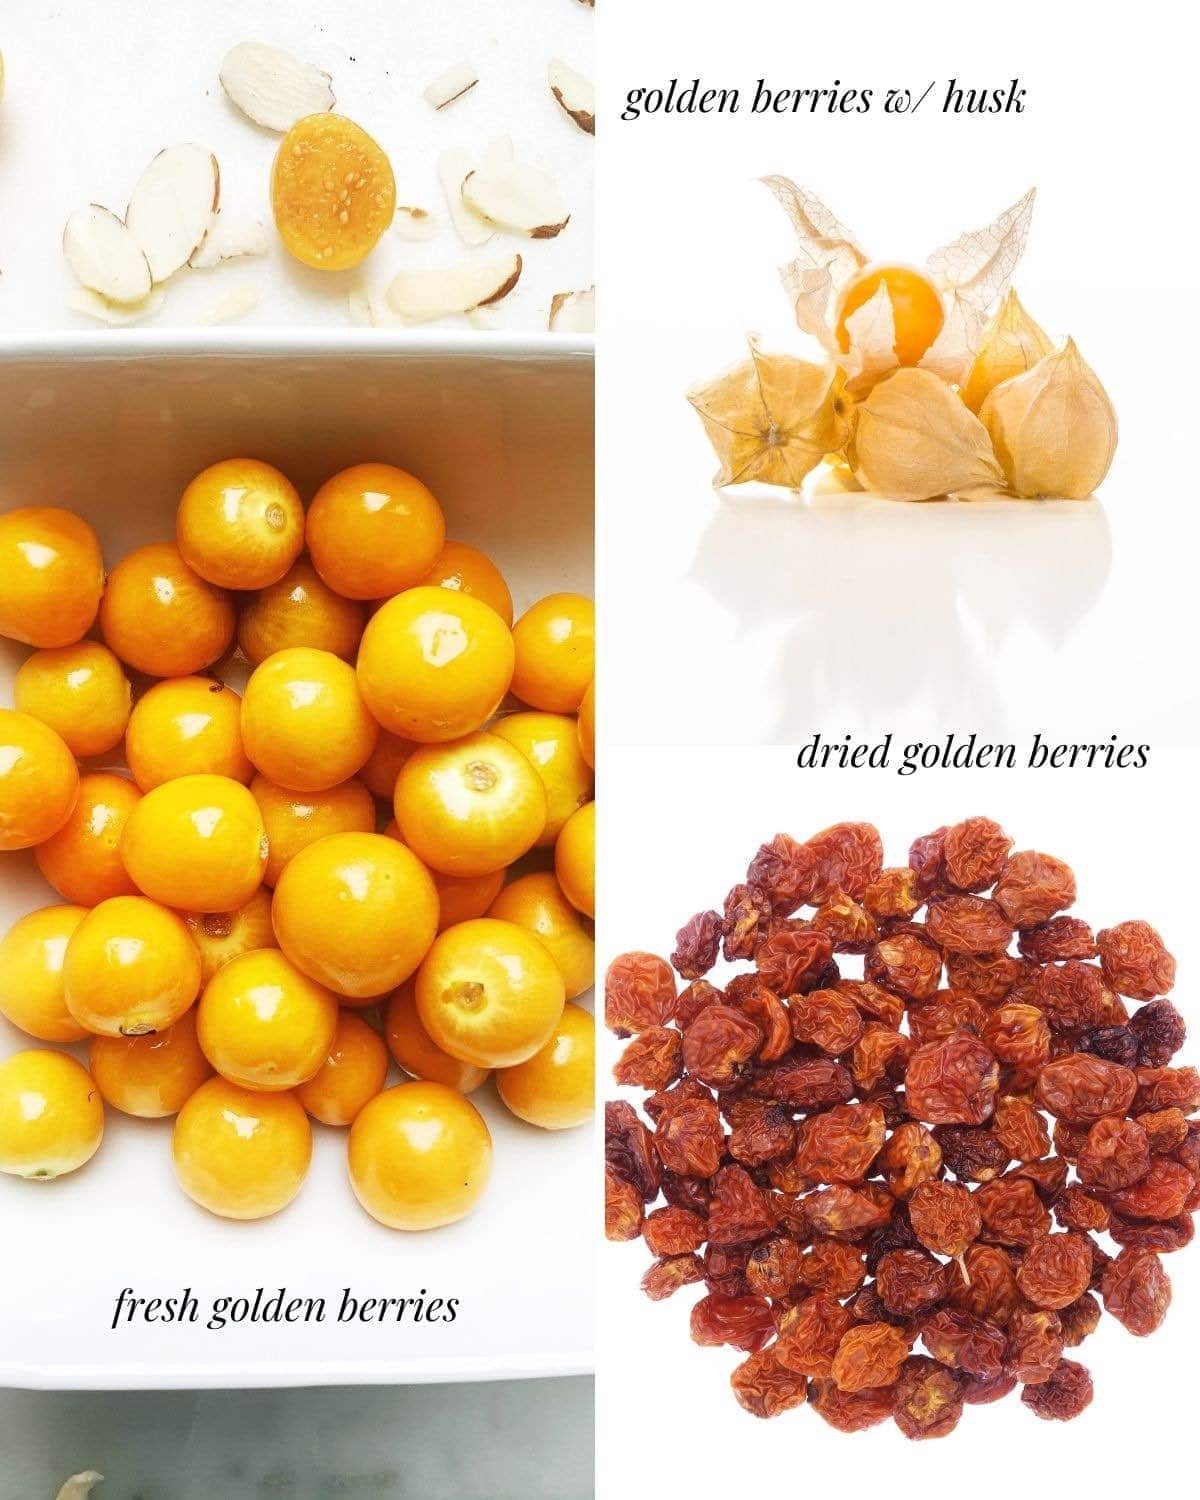 Photo collage with 3 photos: fresh golden berries, dried berries, and berries w/ paper husk.